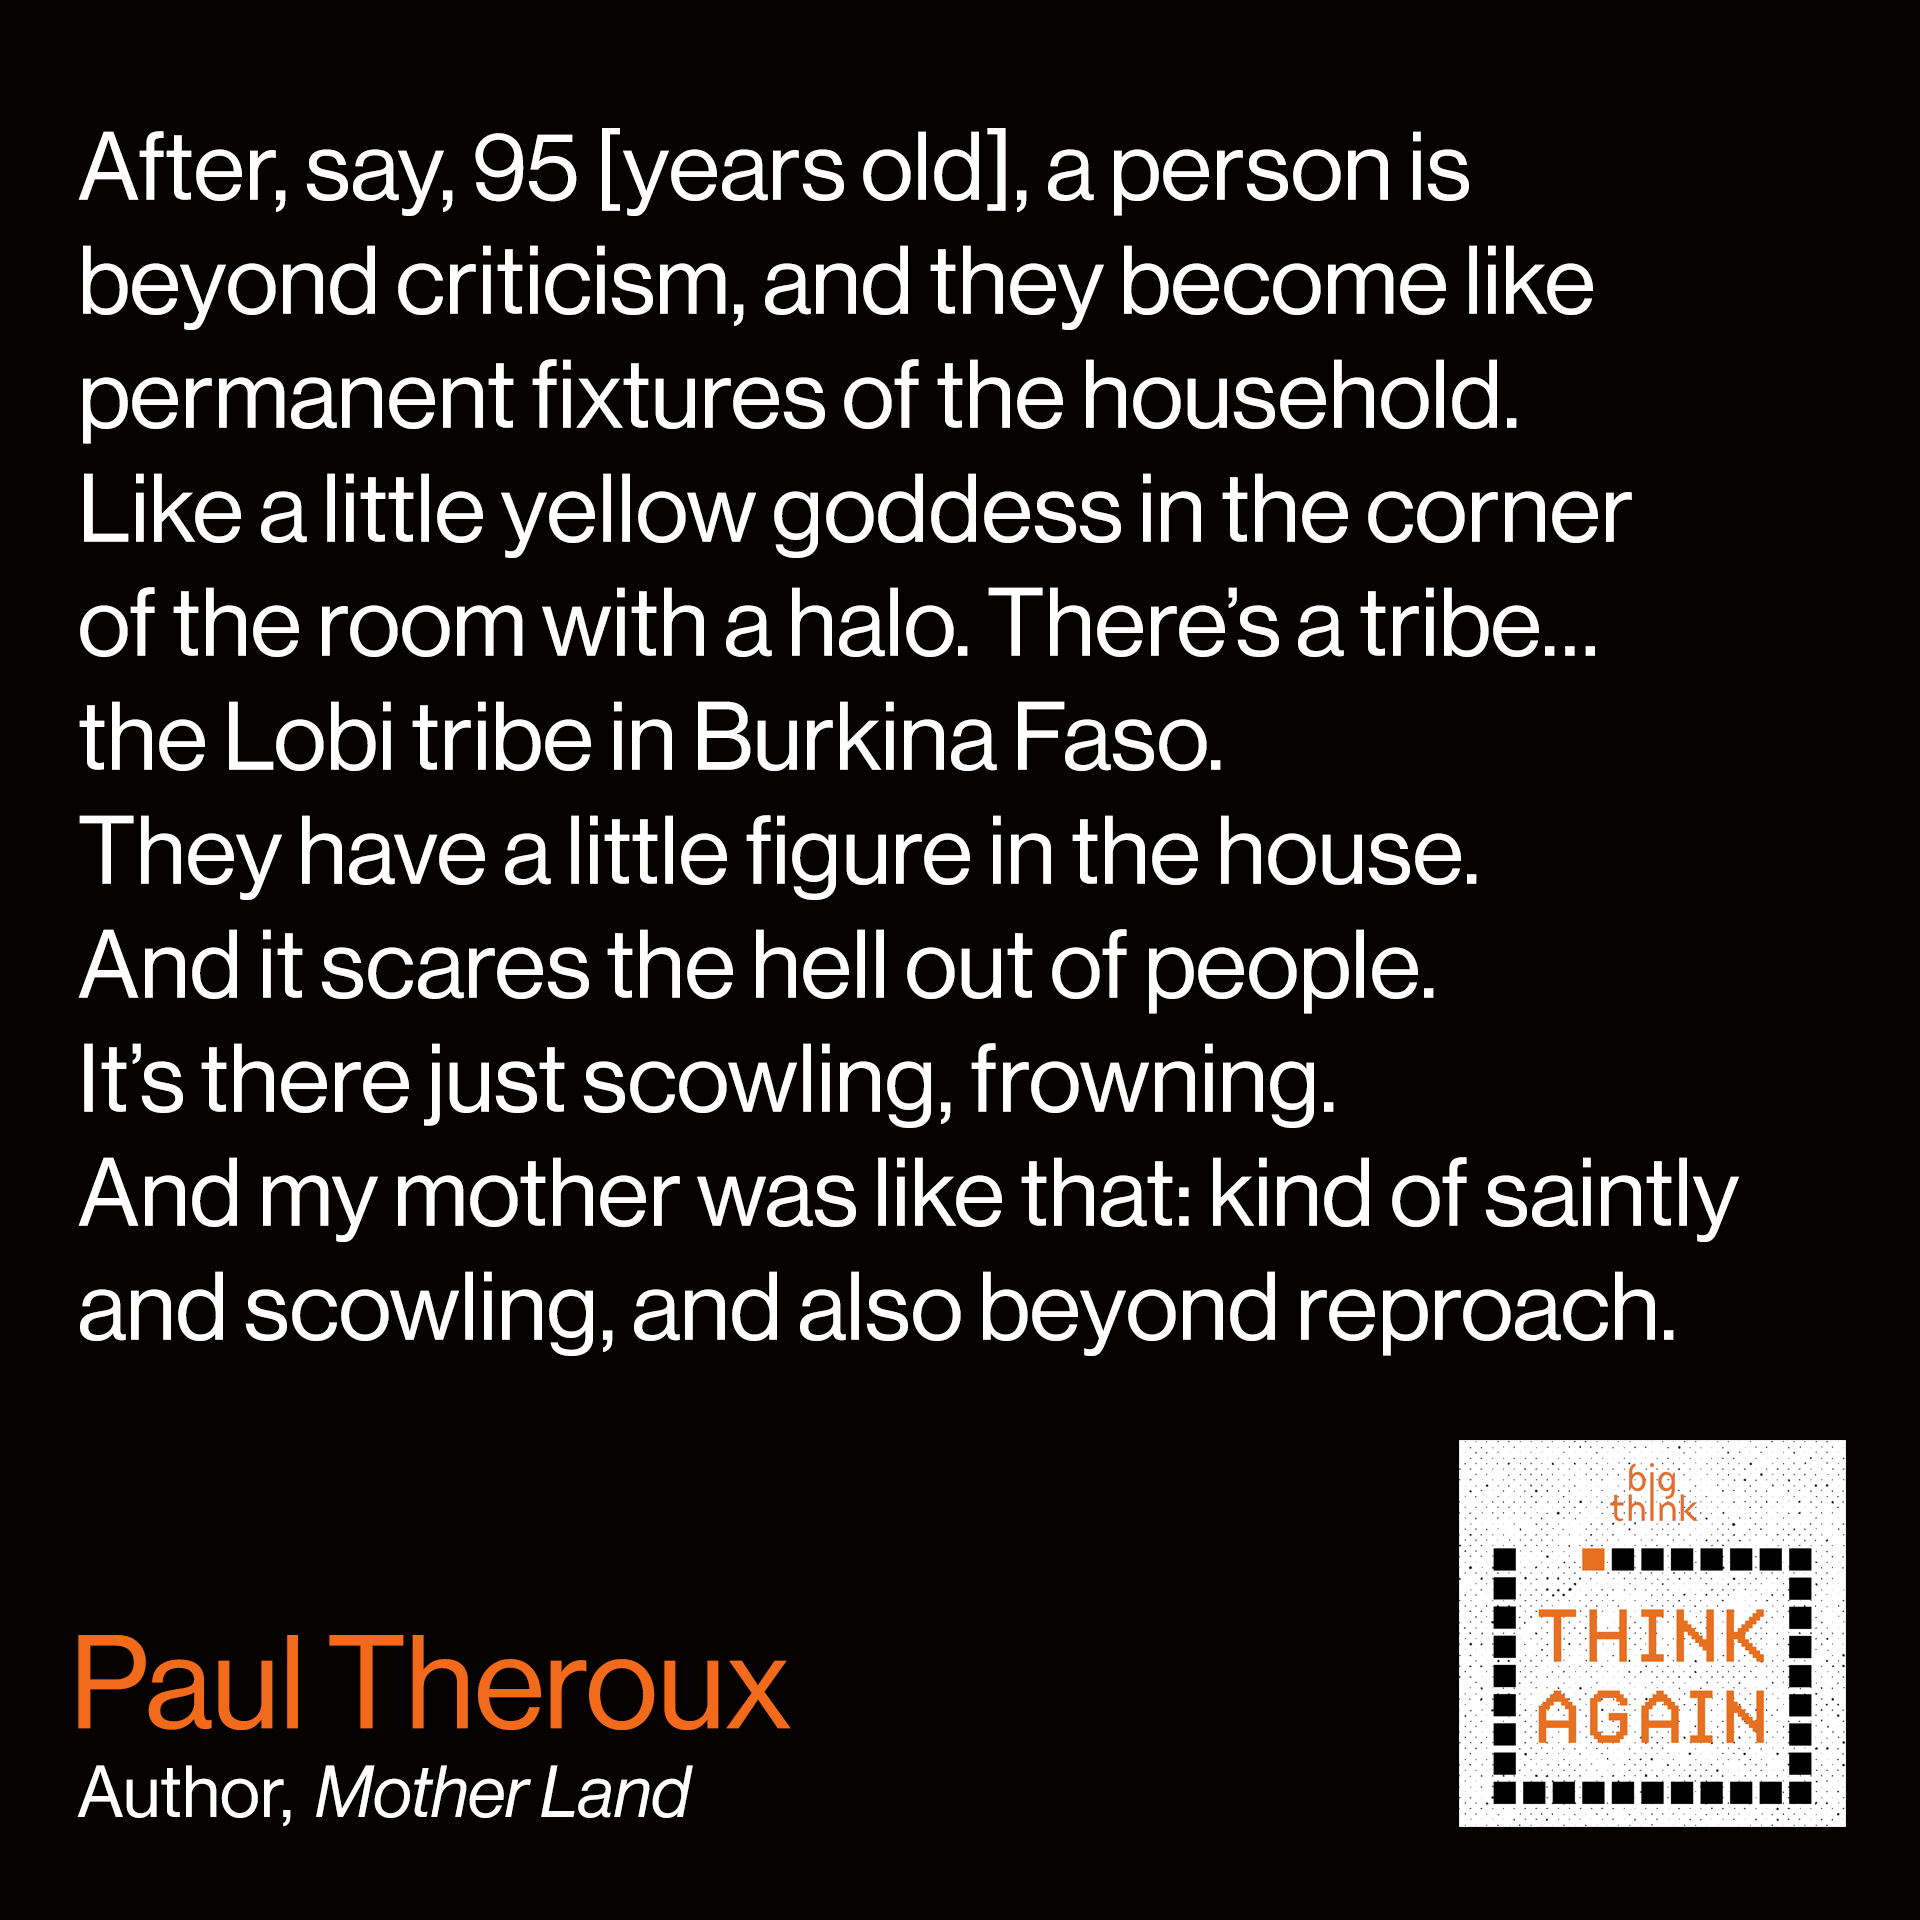 Paul Theroux Quote:  After, say, 95 [years old], a person is beyond criticism,  and they become like permanent fixtures of the household.  Like a little yellow goddess in the corner of the room with a halo.  They become skeletal, with an aura.  There's a tribe…the Lobi tribe in Burkina Faso.  They have a little figure in the house. And it scares the hell out of people.  It's there just scowling, frowning. And my mother was like that.  Kind of saintly and scowling, and also beyond reproach.